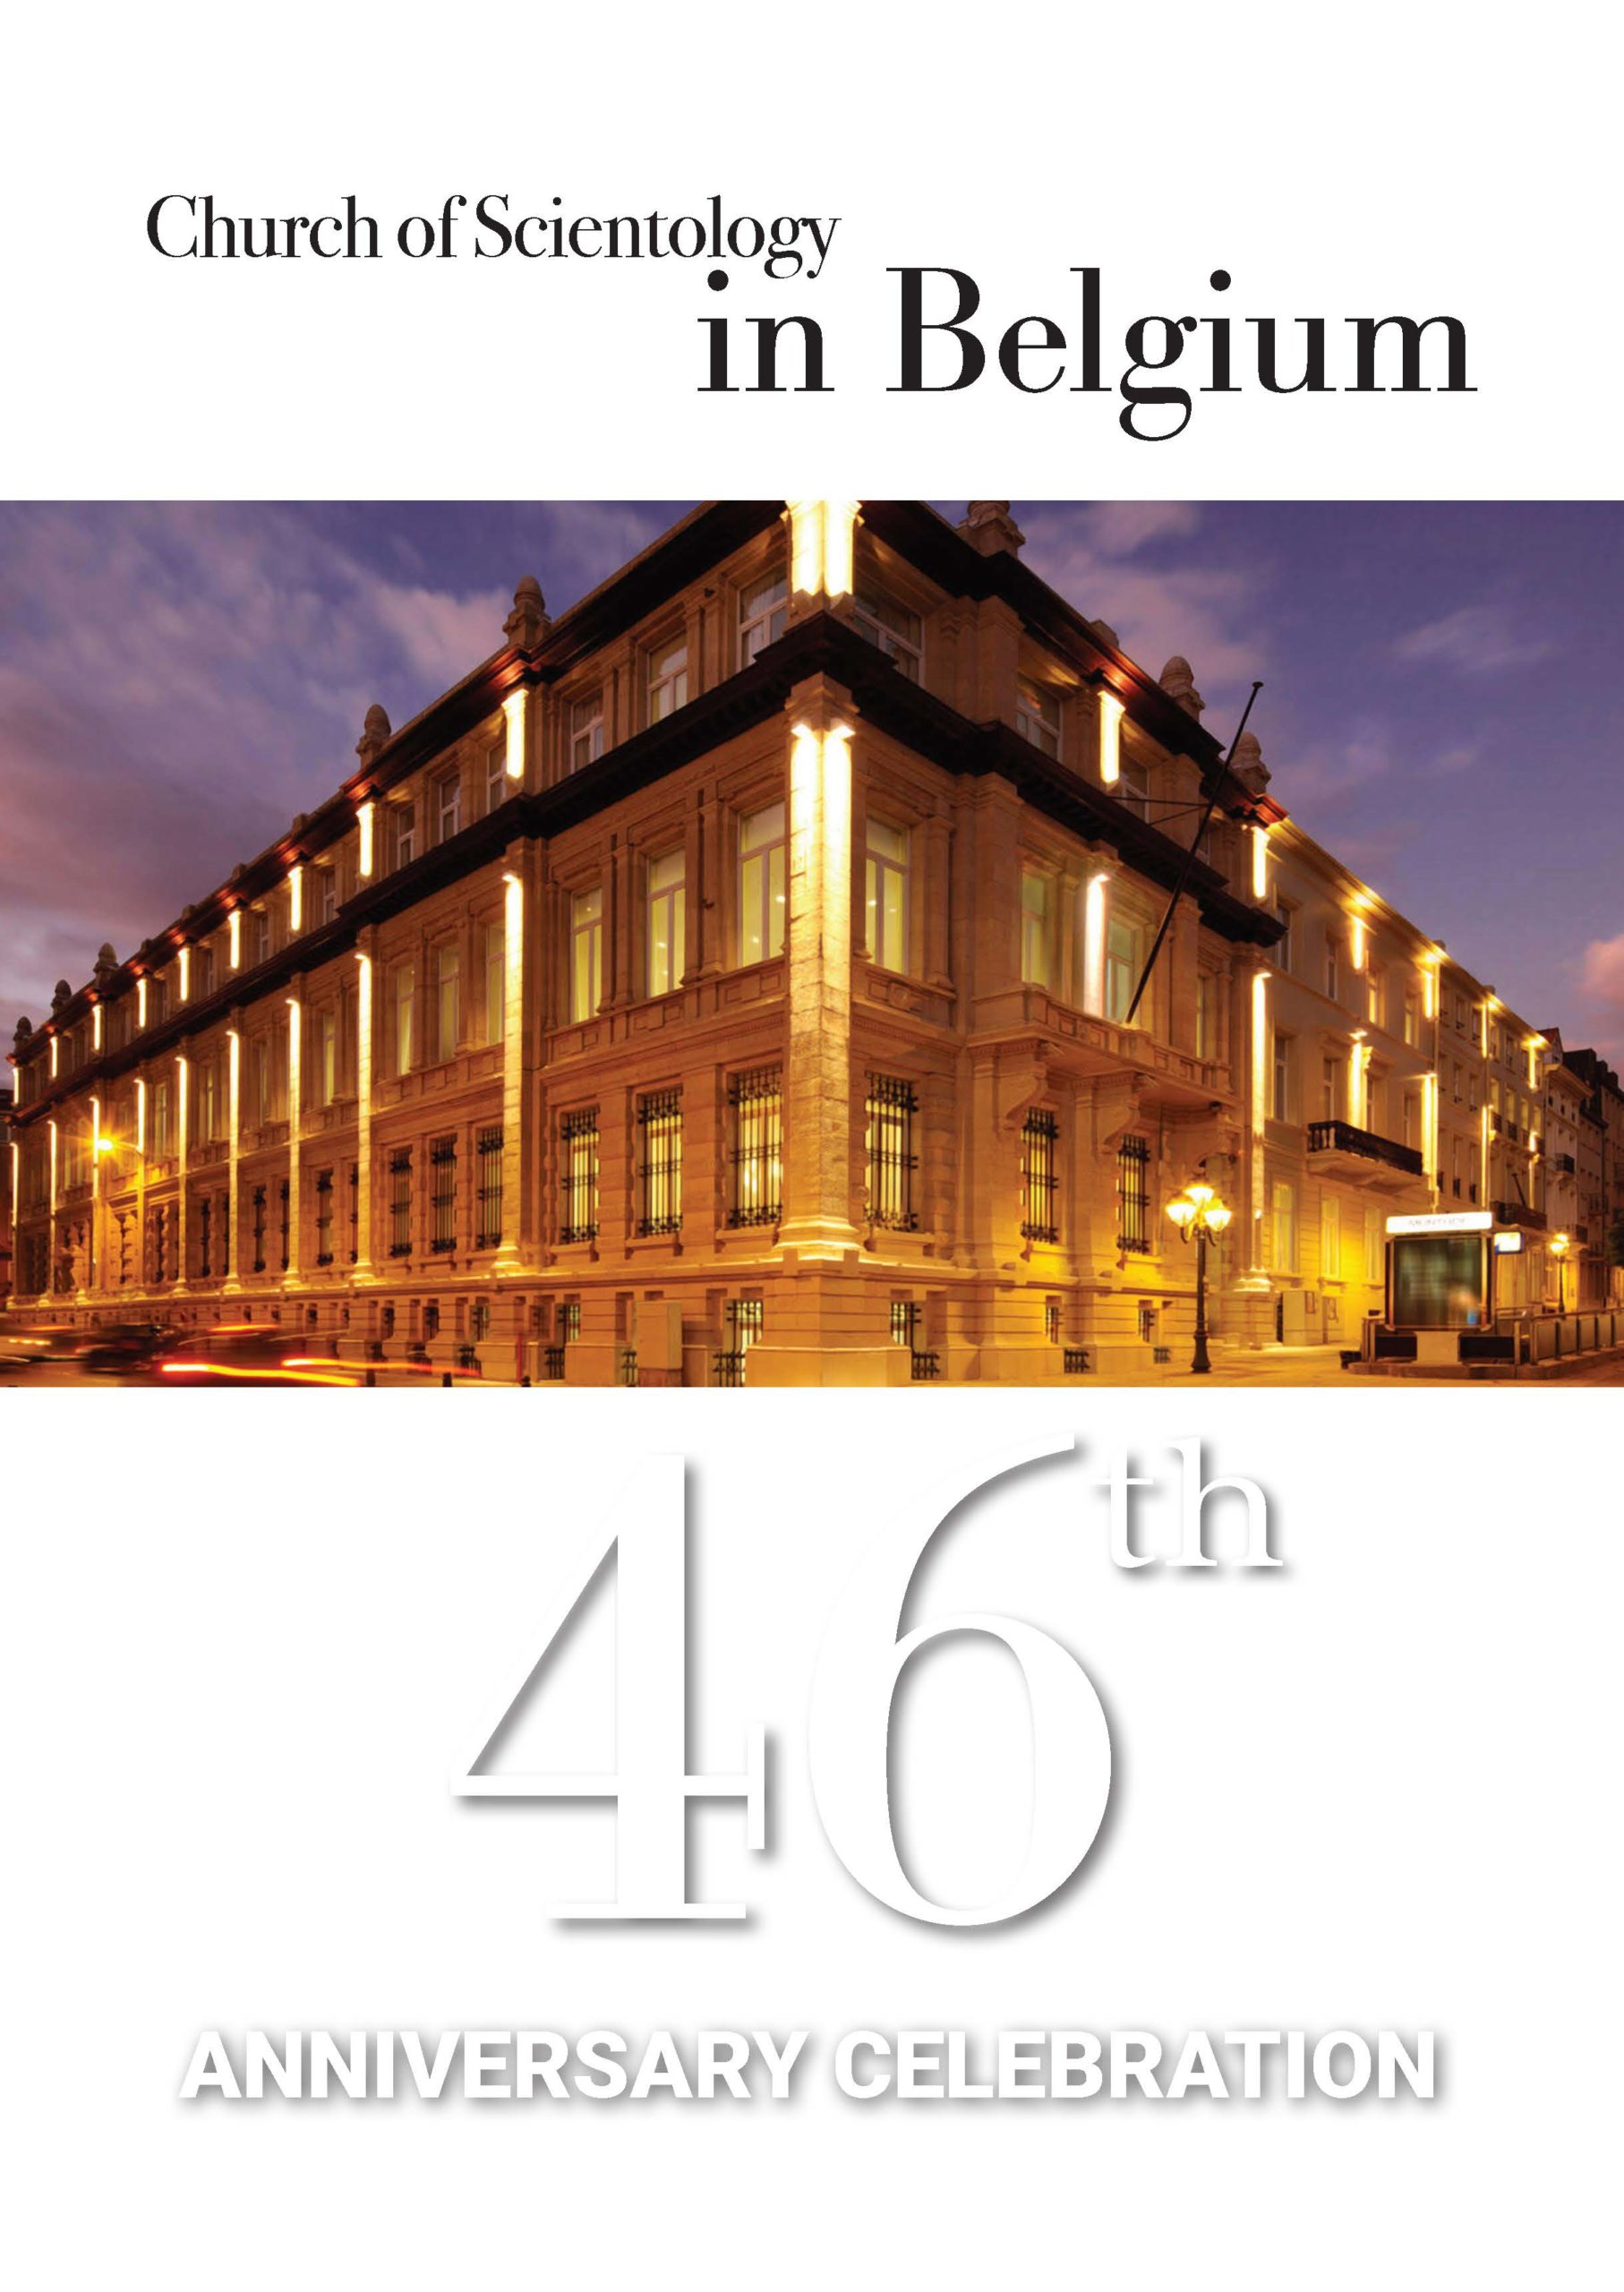 Celebration of the 46th Anniversary of the Church of Scientology in Belgium 🗺